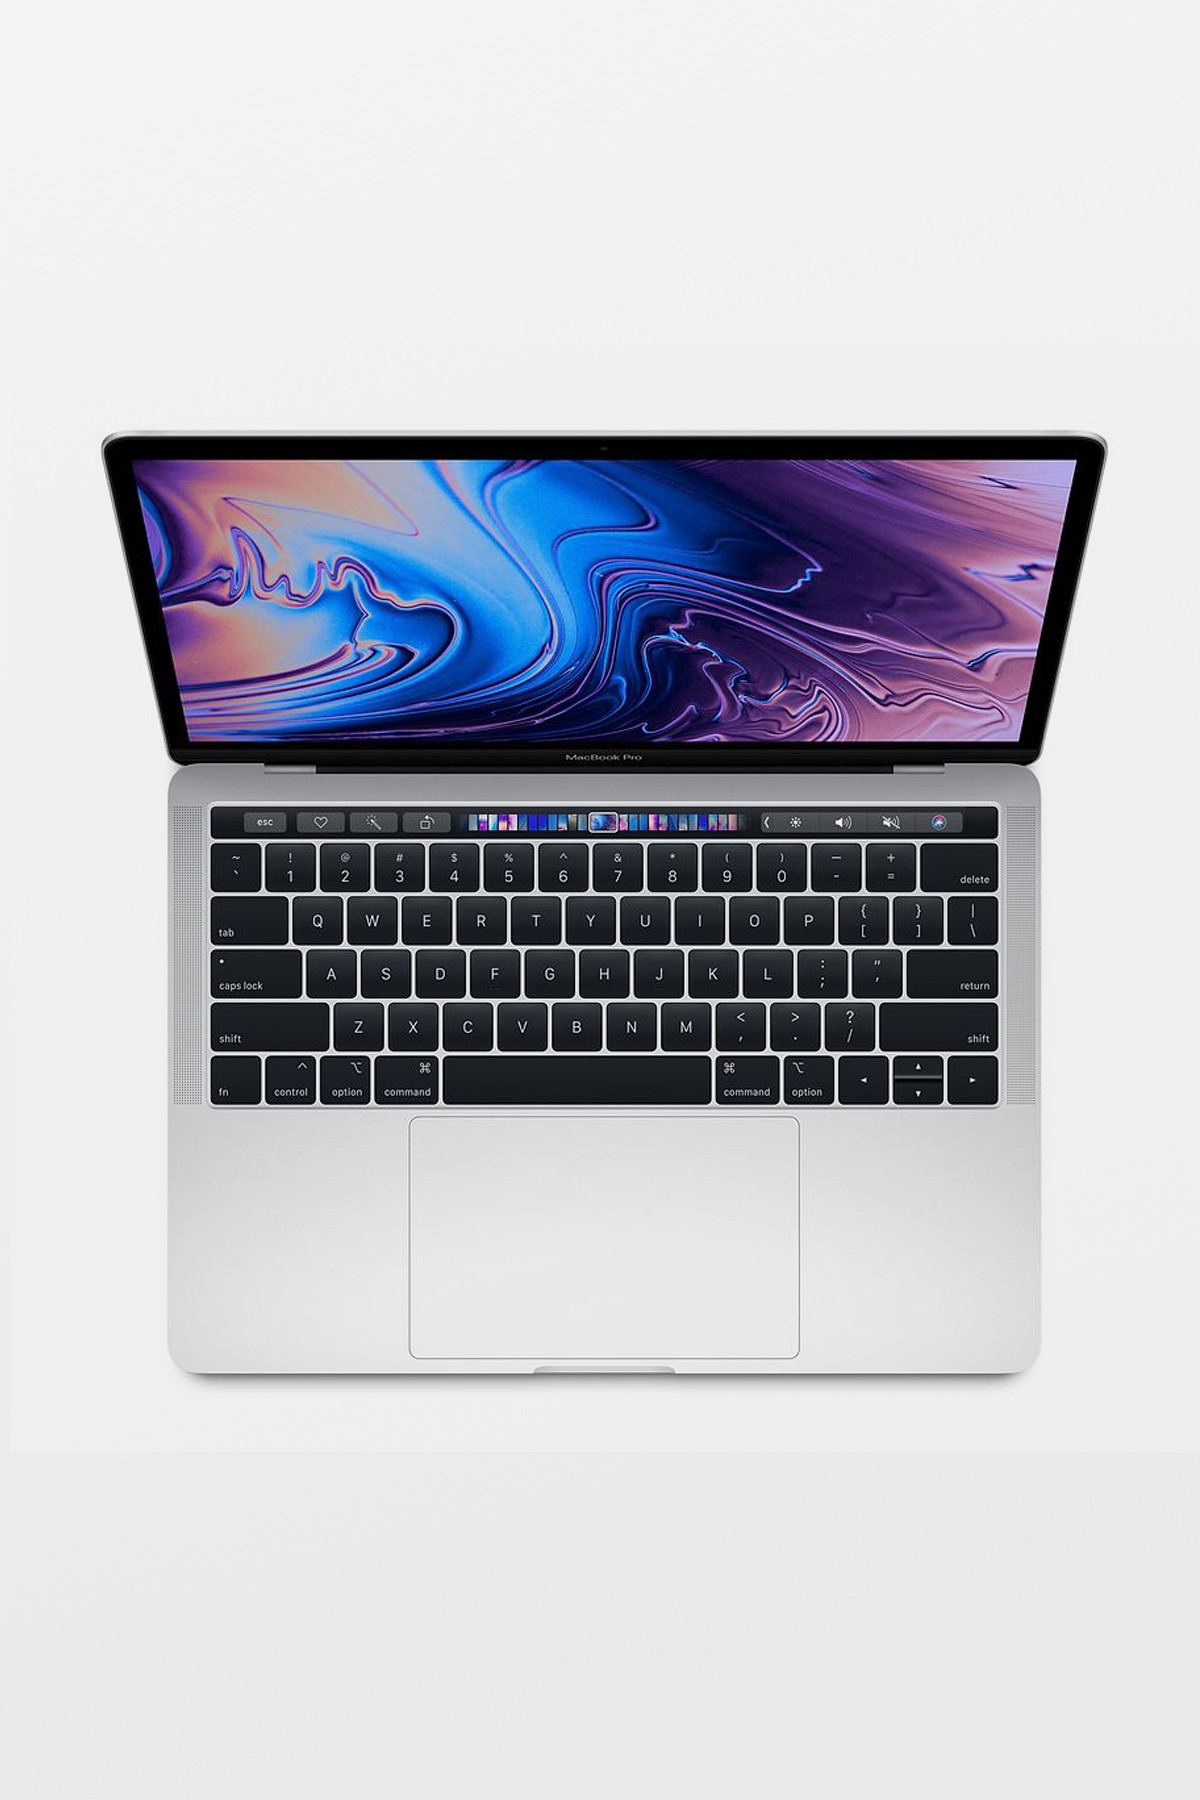 Apple MacBook Pro with Touch Bar 13-inch (2.3GHz i5/8GB/256GB Flash/Intel Iris Plus Graphics 655) - Silver - refurbished